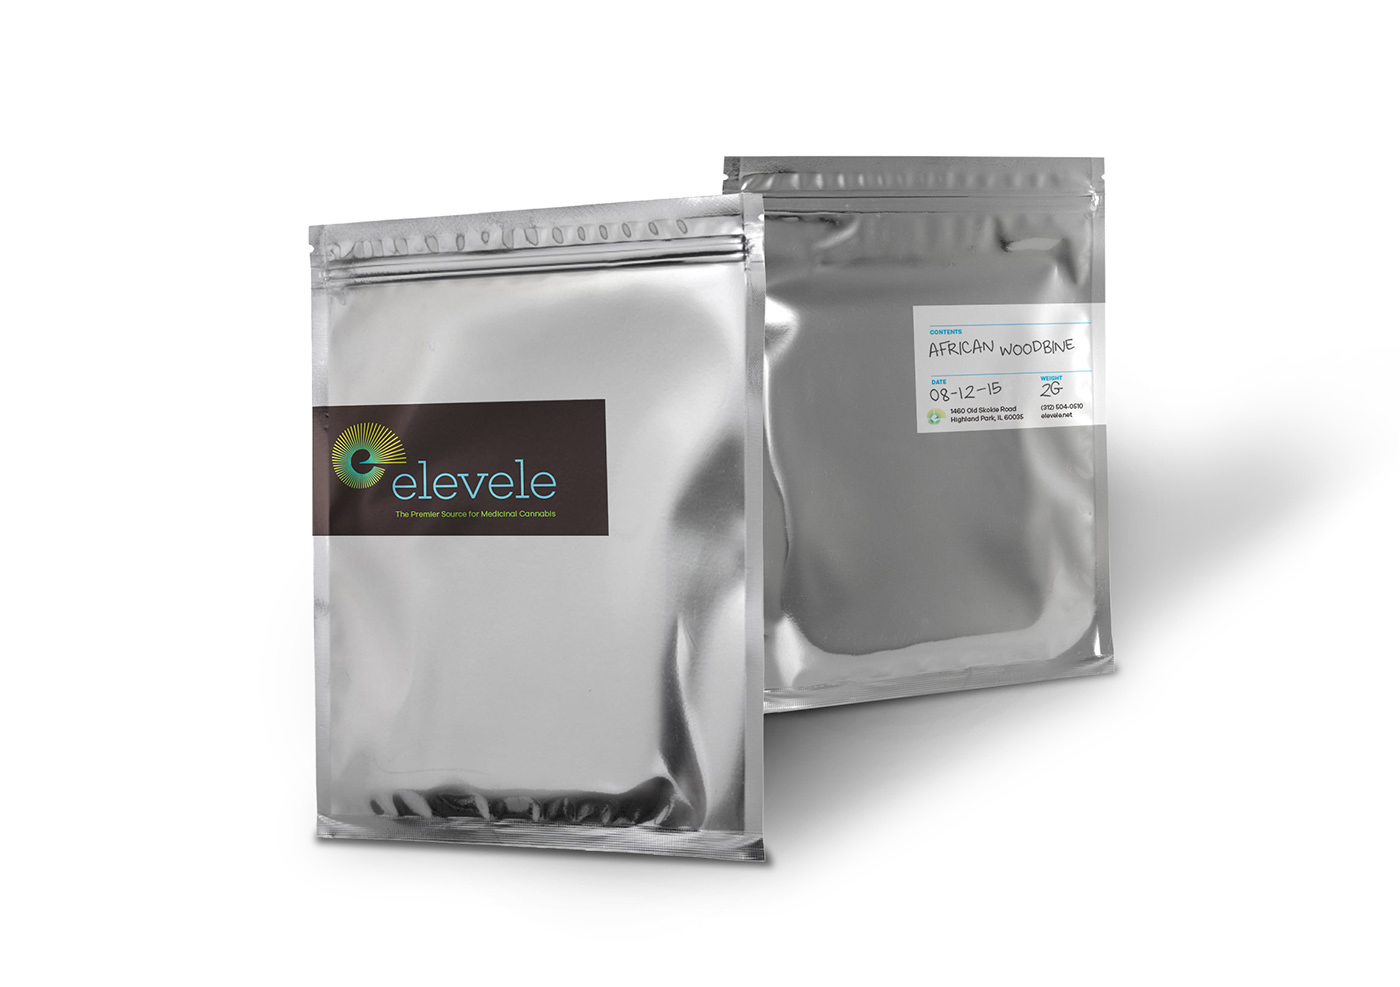 elevele-bag-hazen